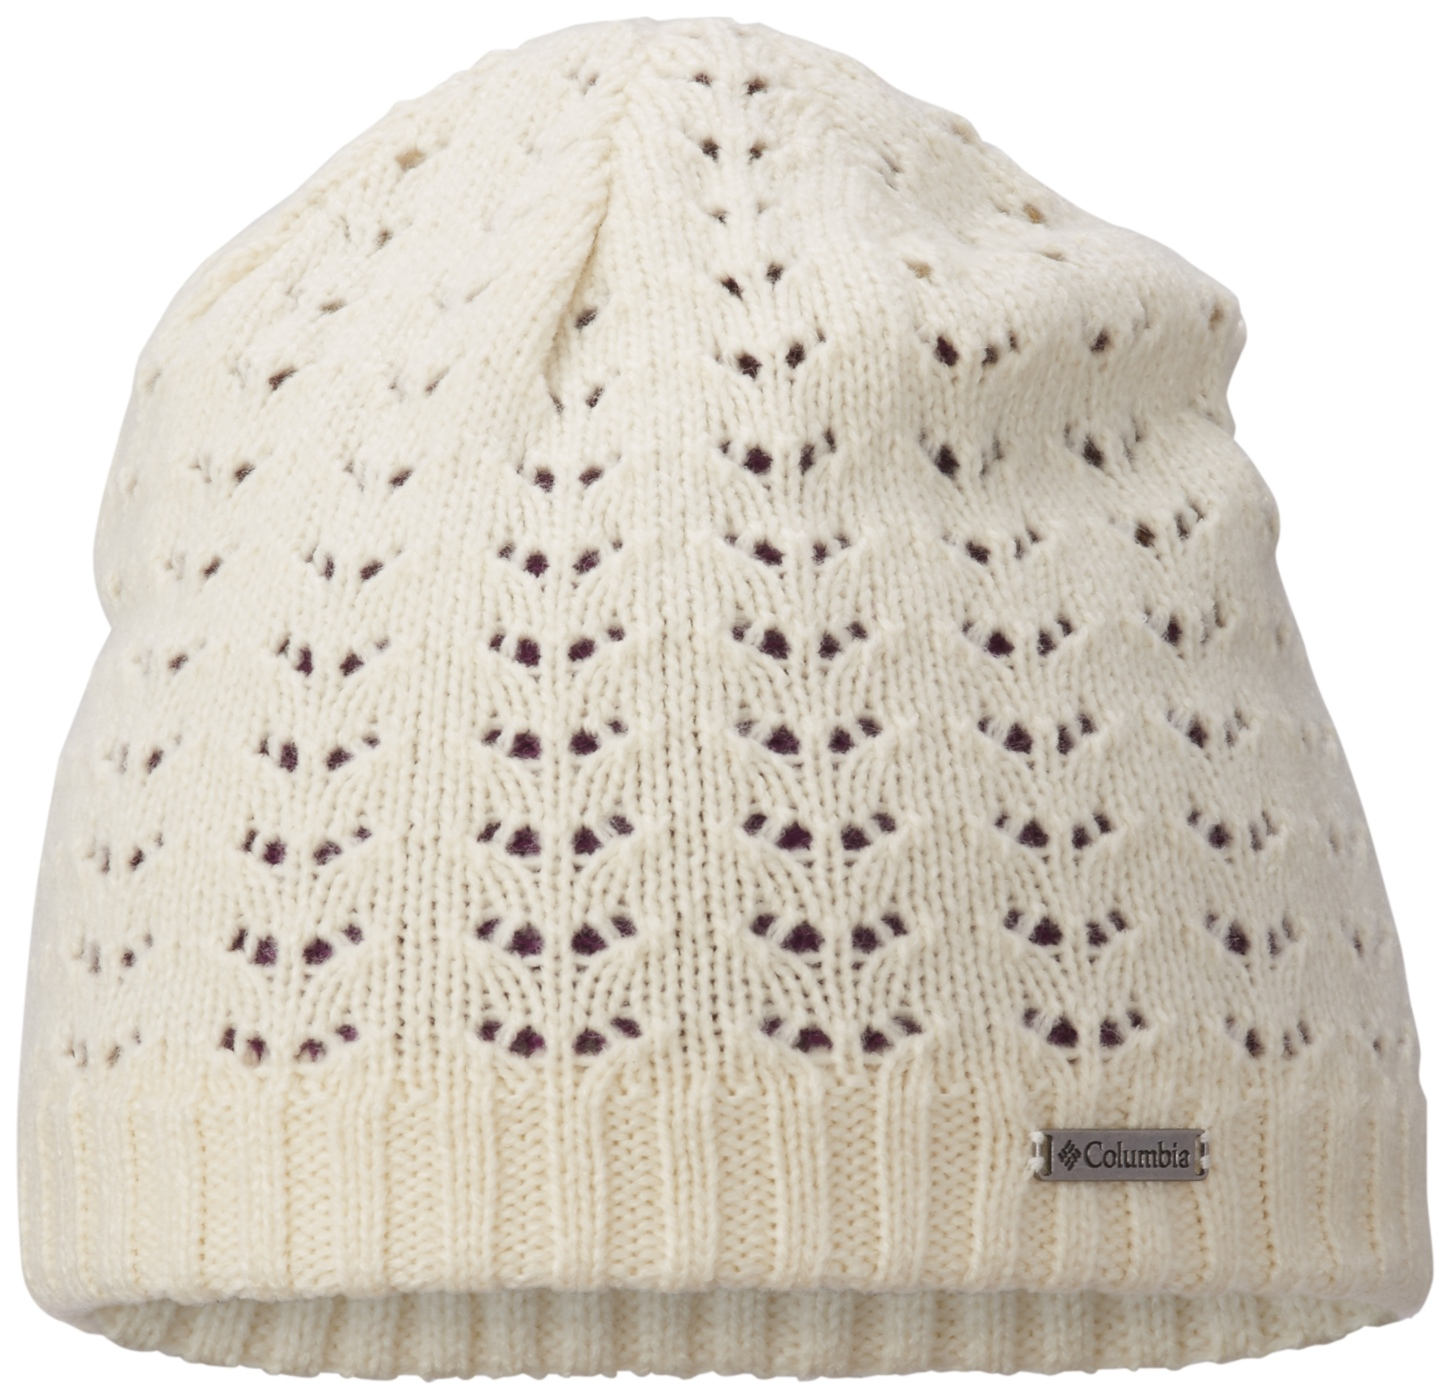 Columbia Winter Wander Beanie Chalk-30